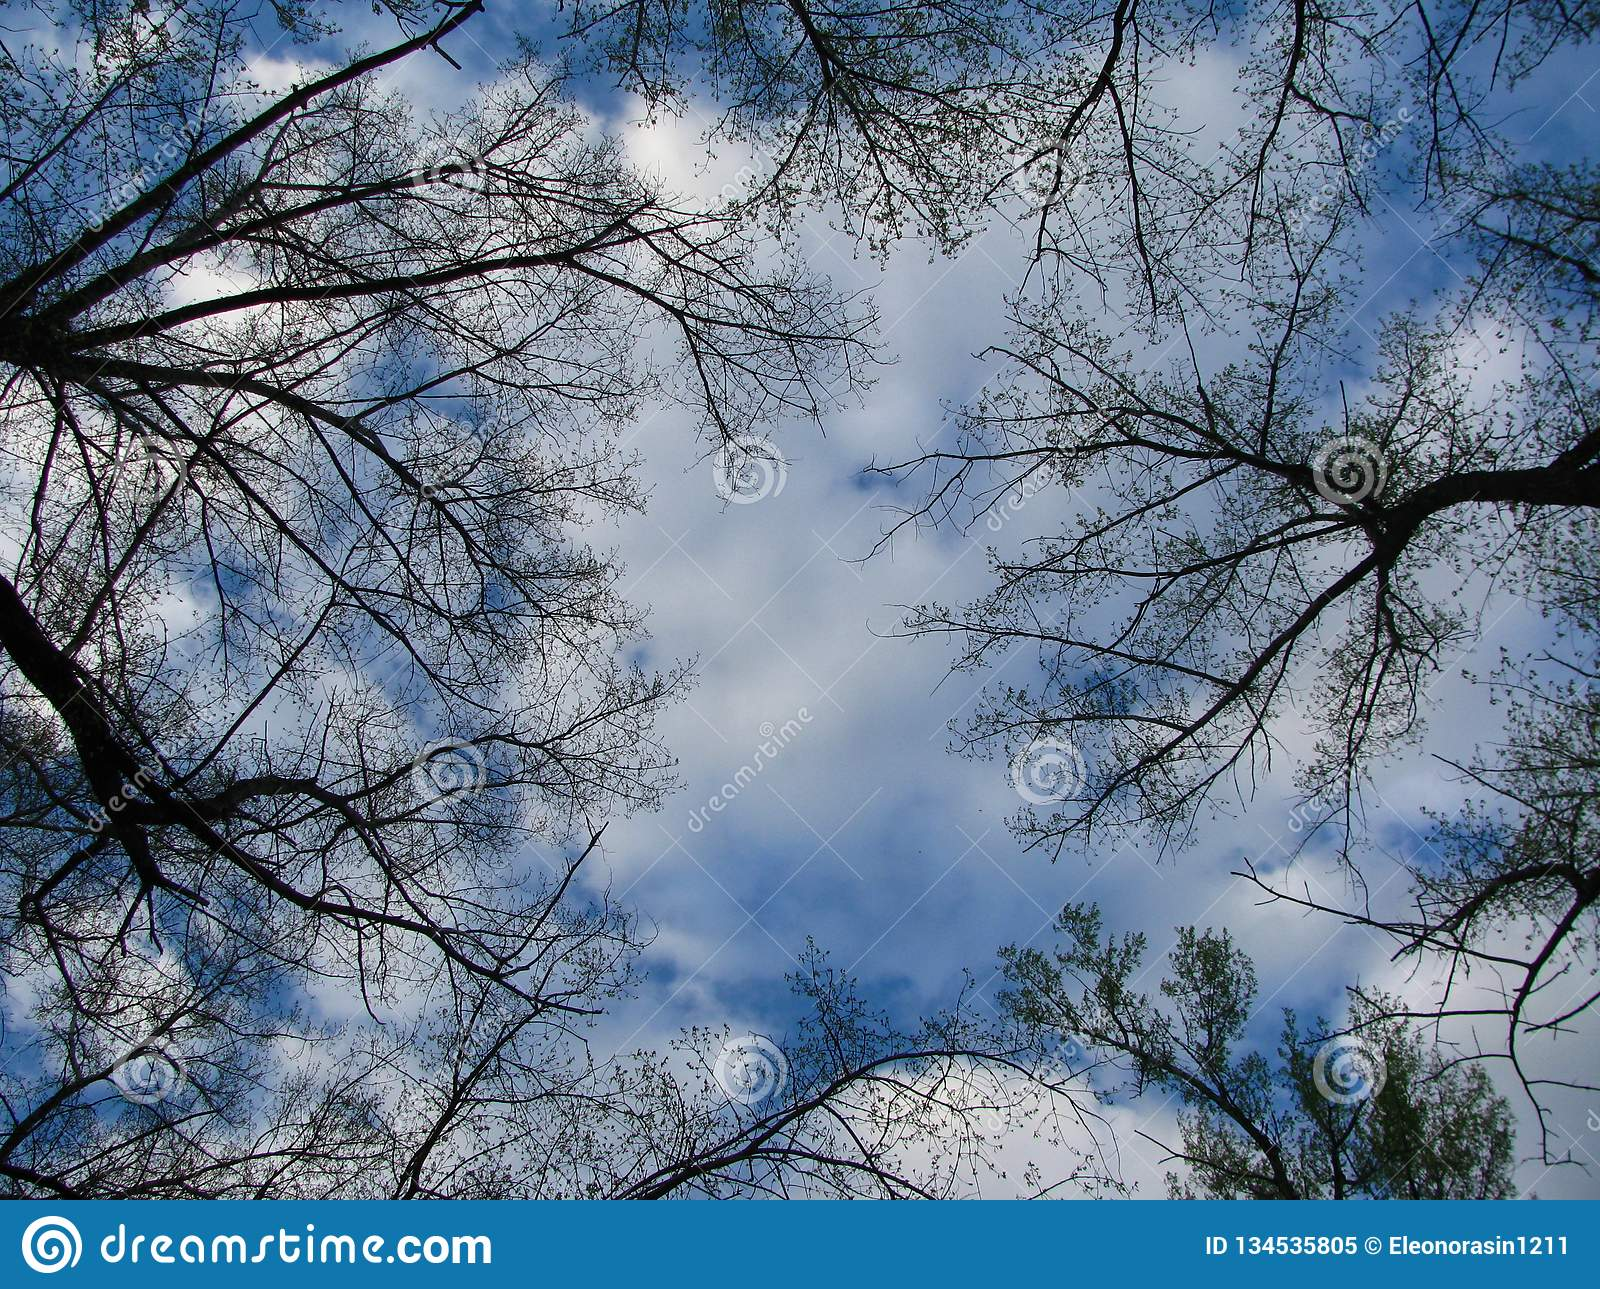 Trees aspire up into the white clouds